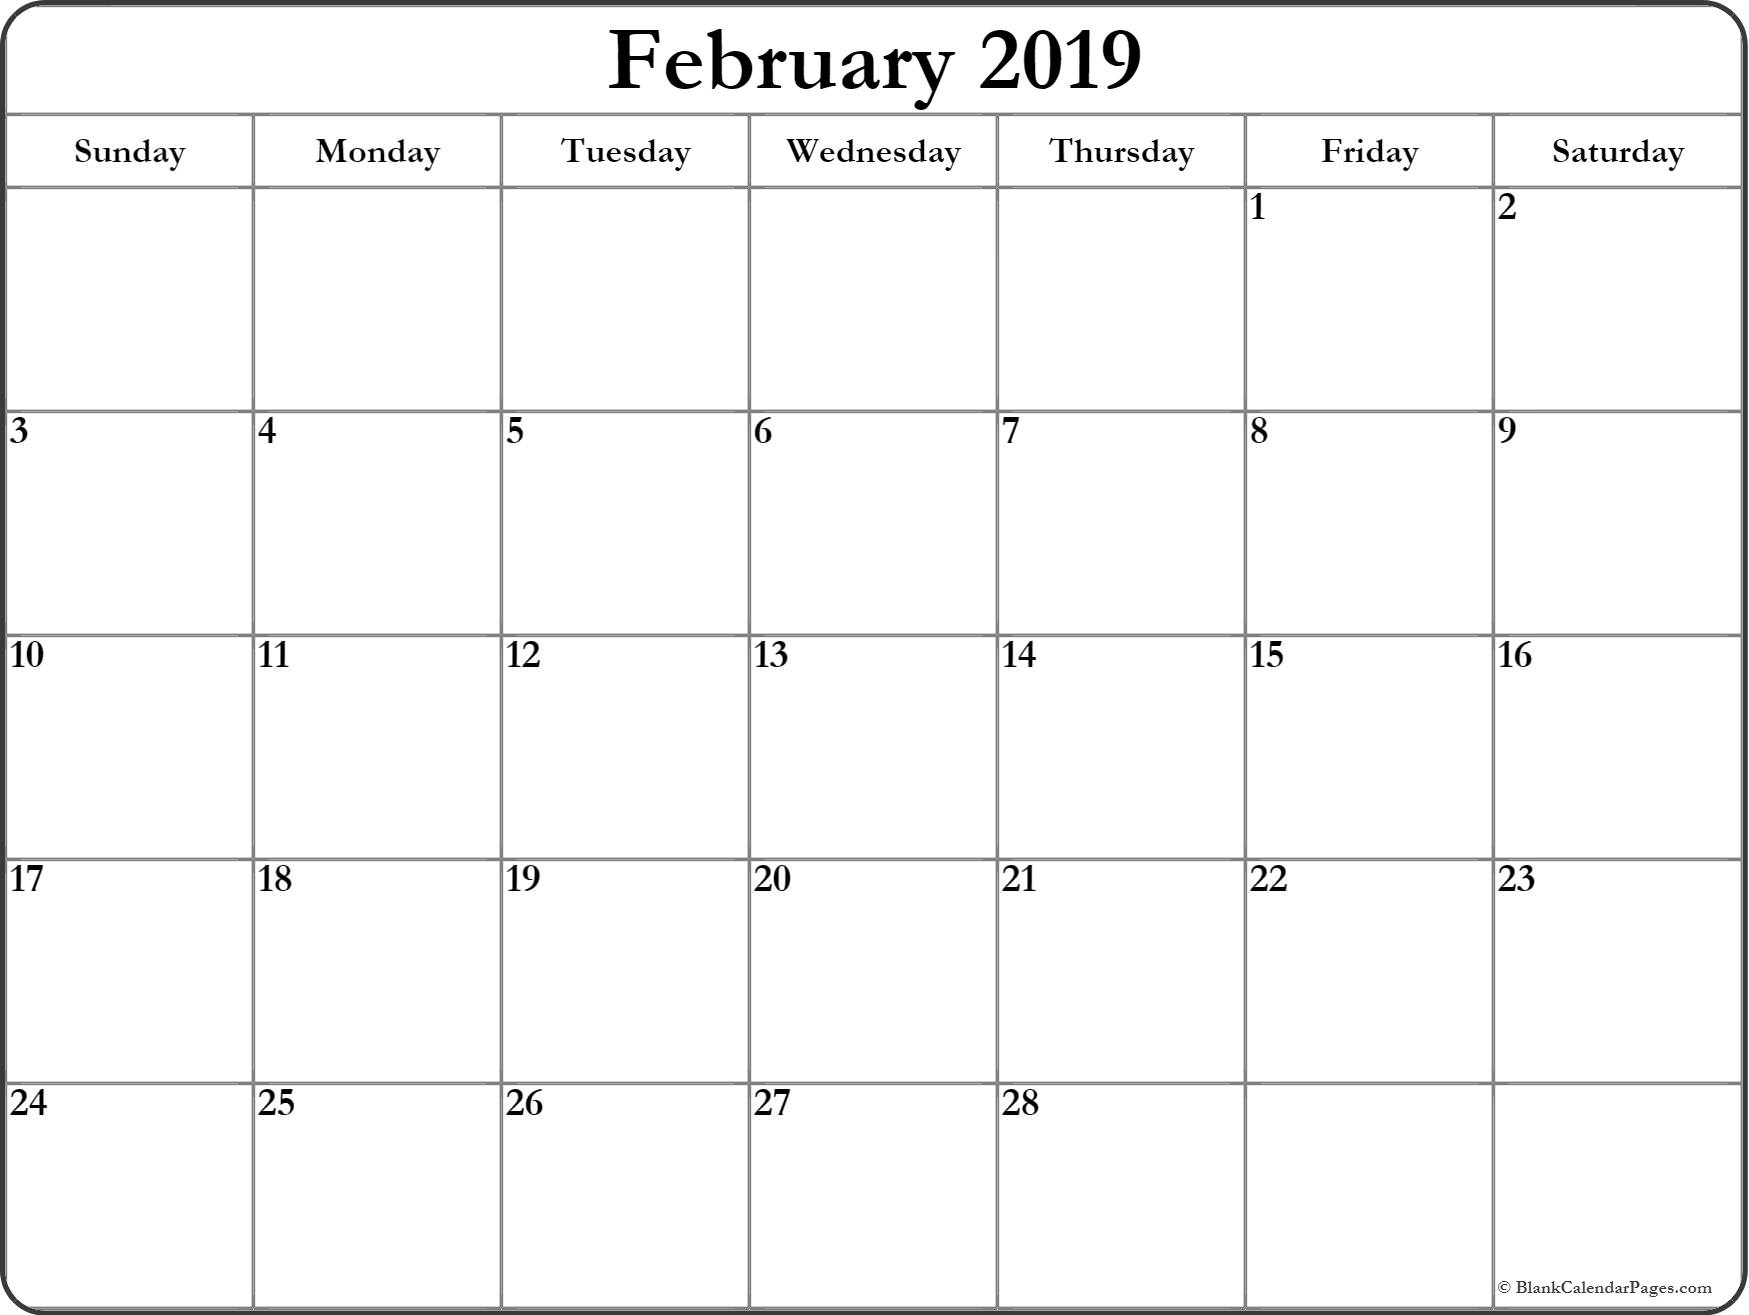 February 2019 Calendar Document Word